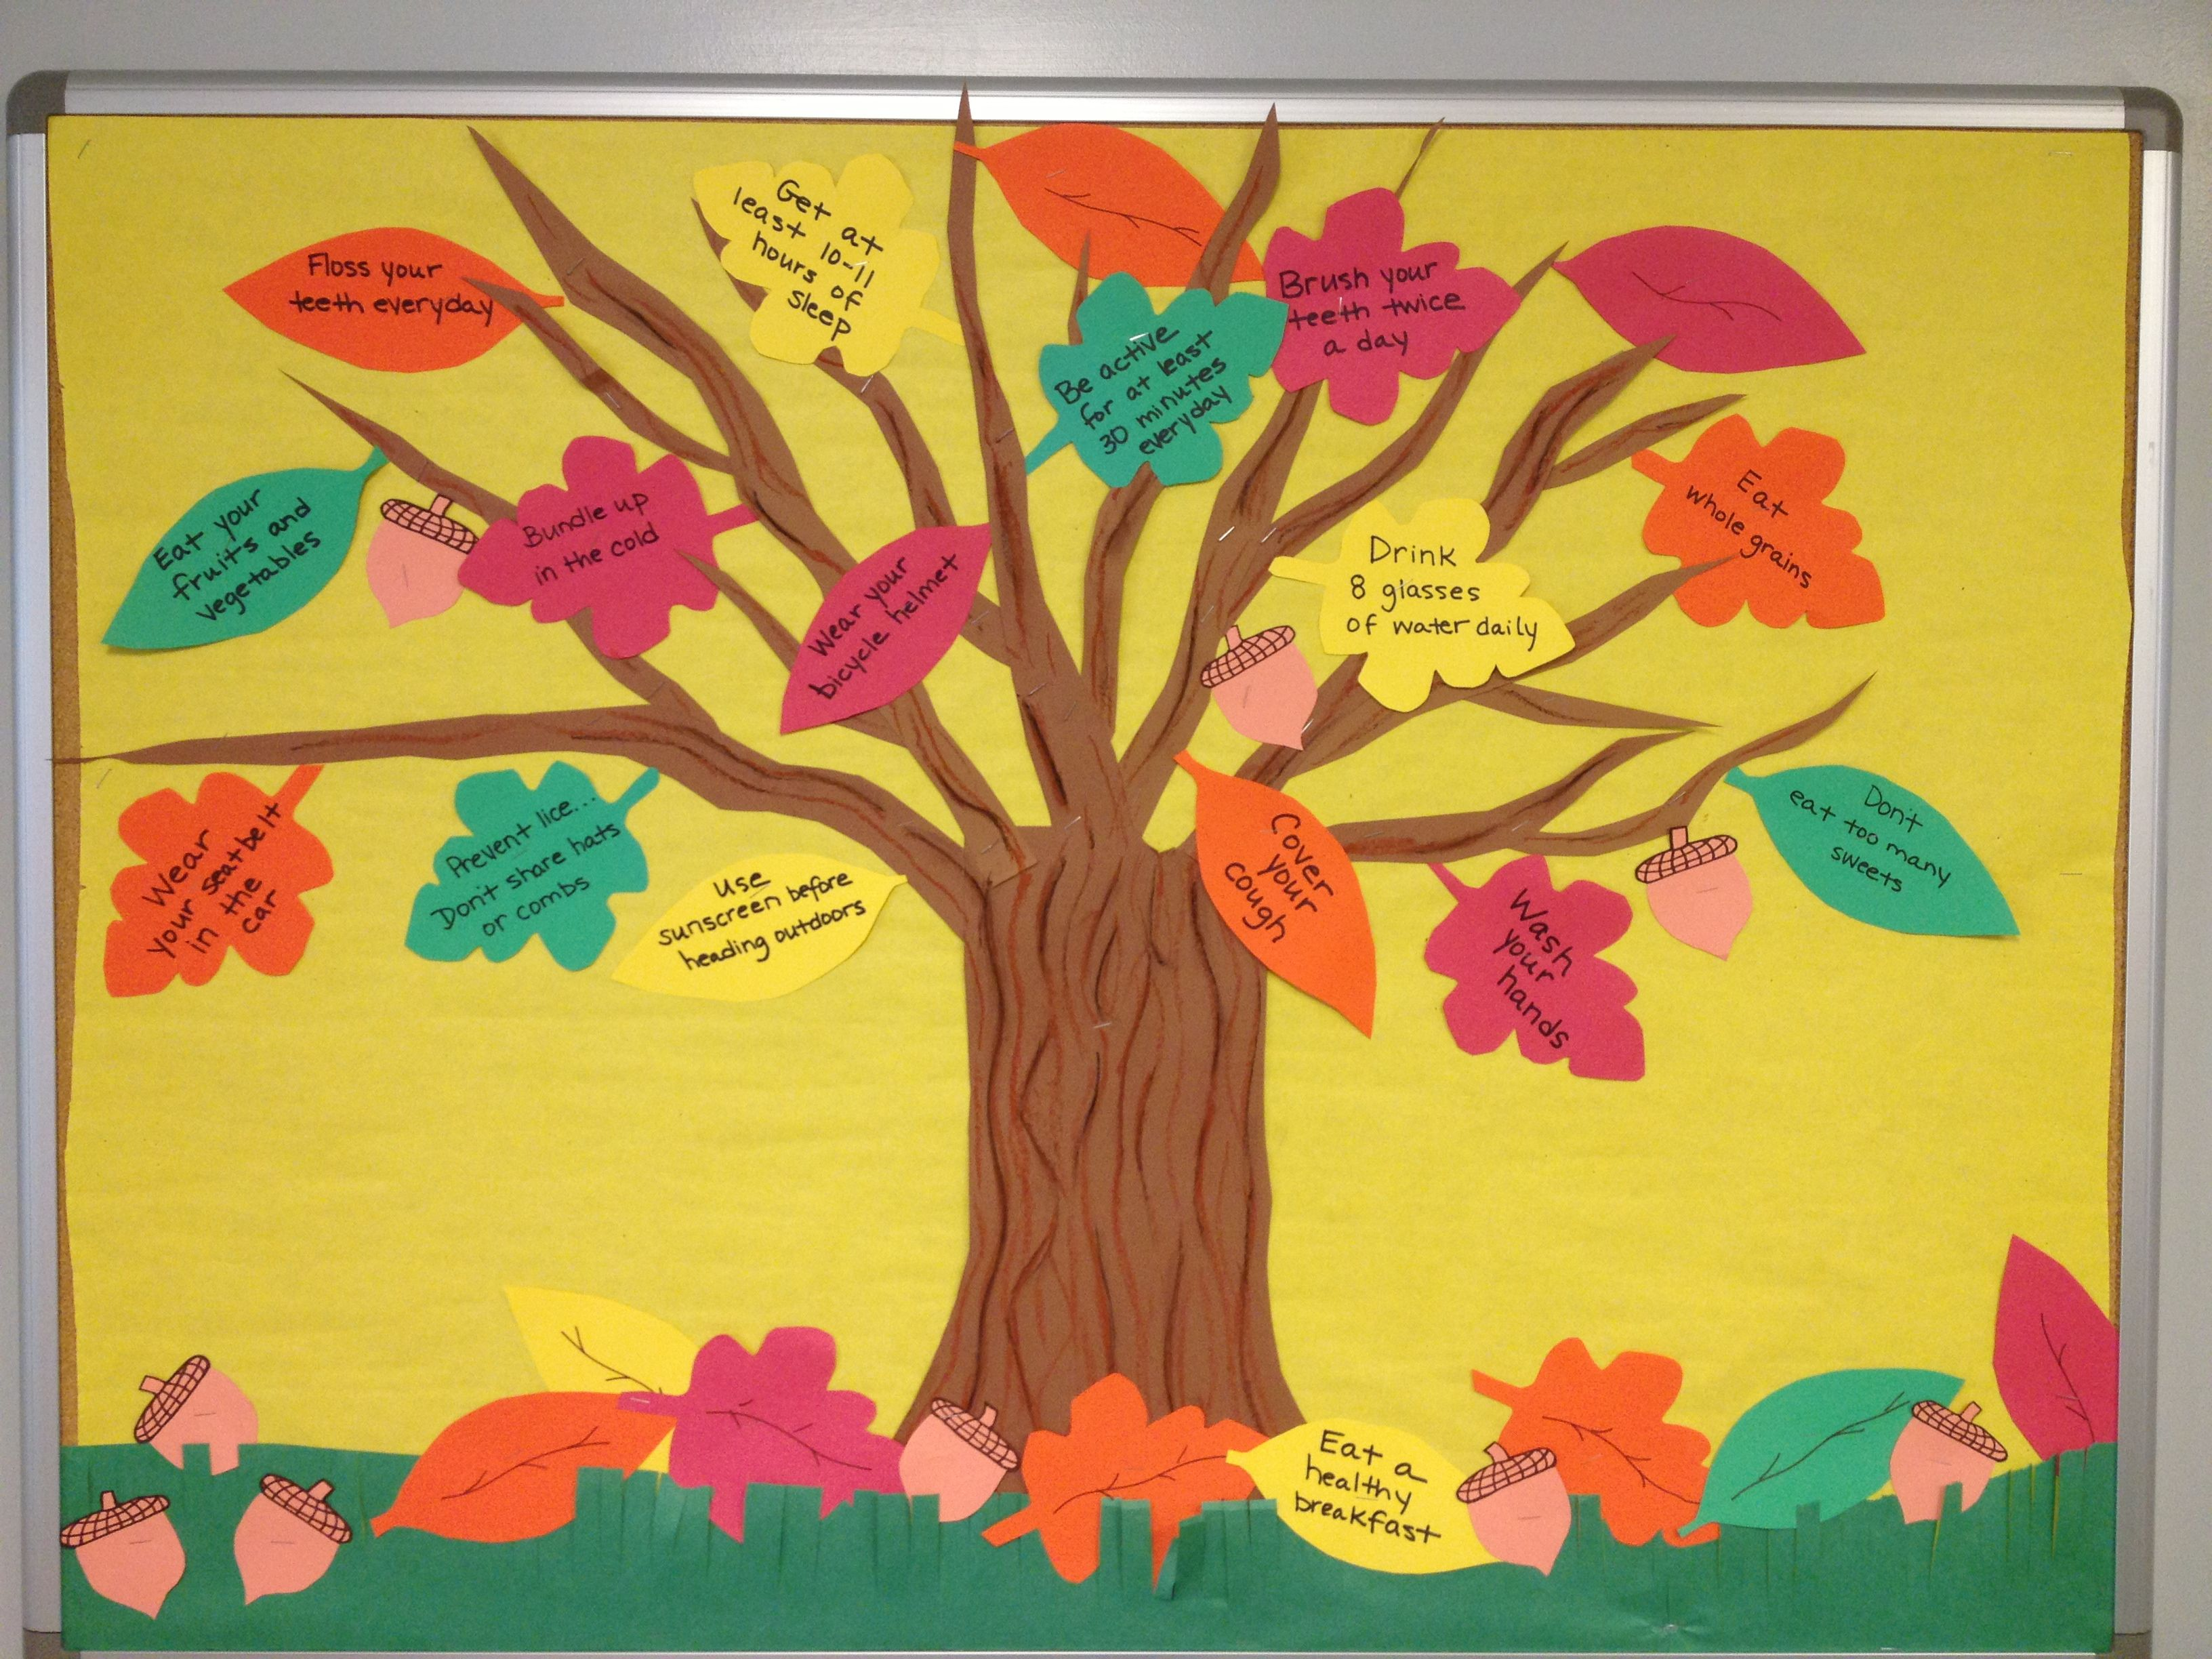 Go green vegetable bulletin board idea myclassroomideas com - Fall Into Healthy Habits School Bulletin Board